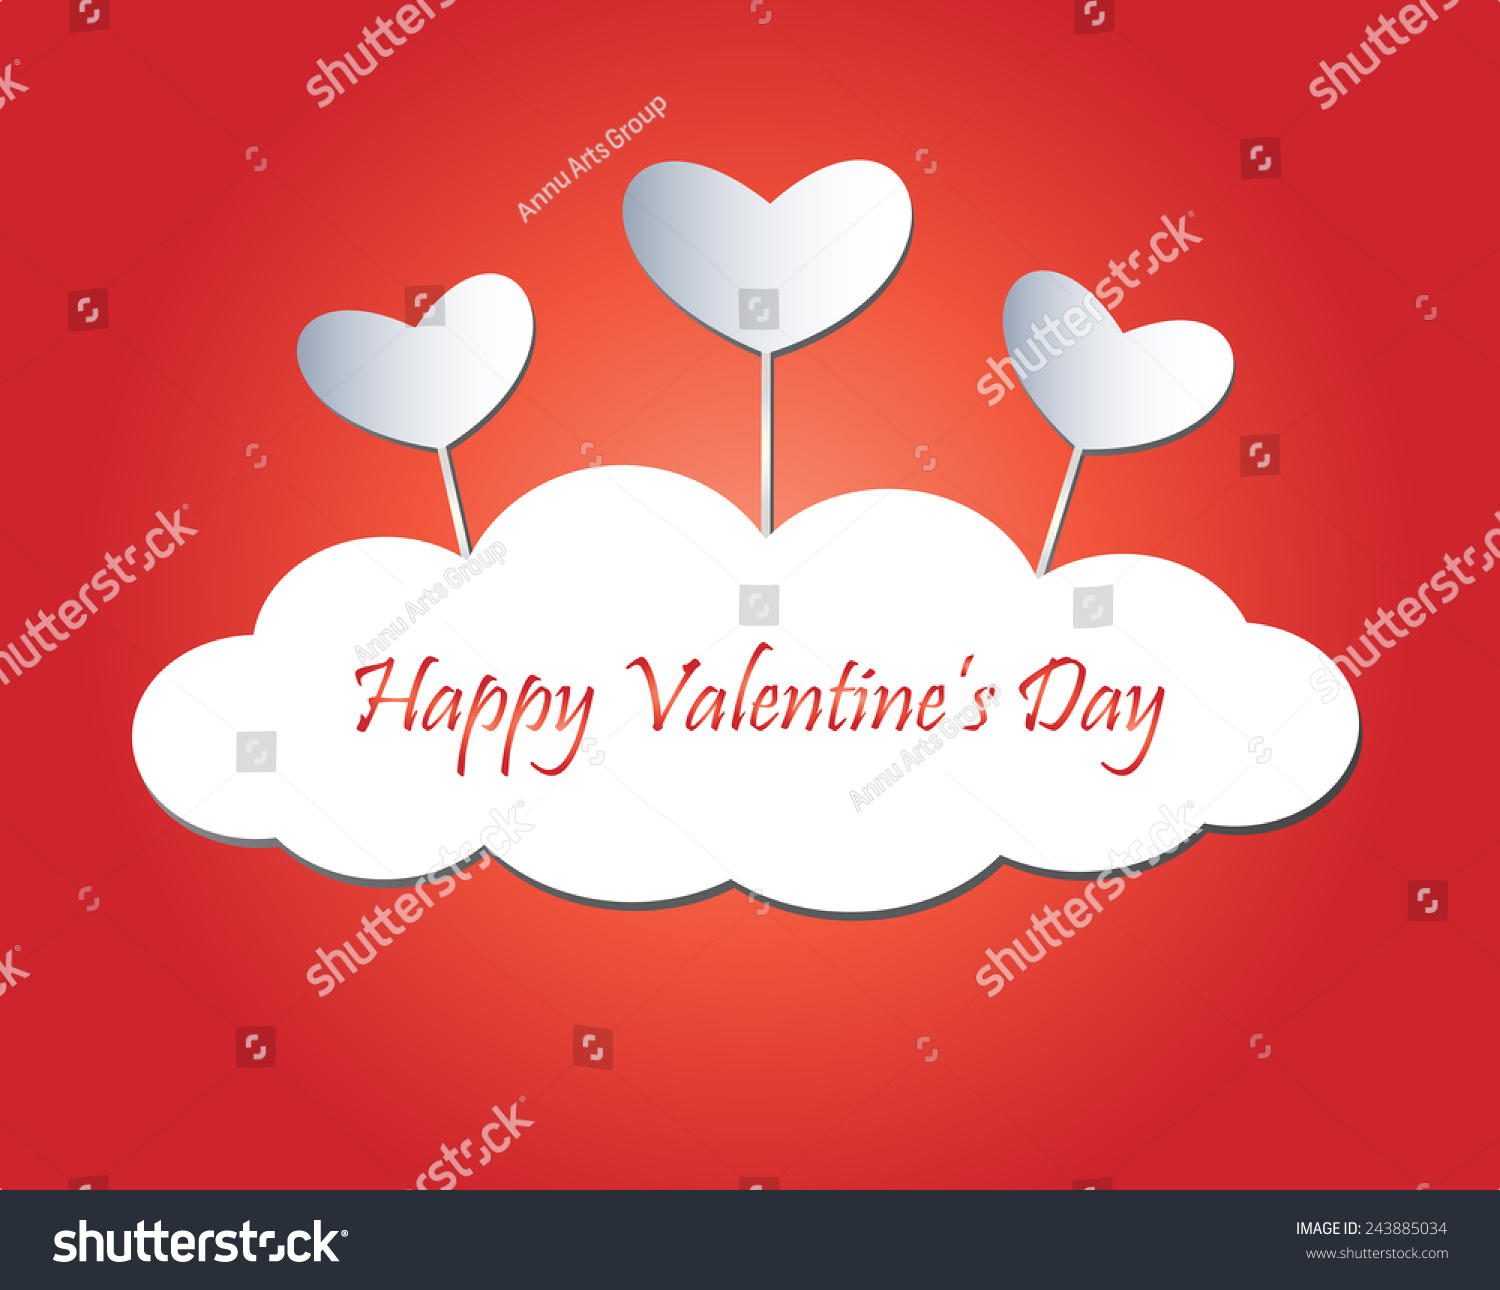 Happy Valentines Day Greeting Card Stock Vector 243885034 Shutterstock